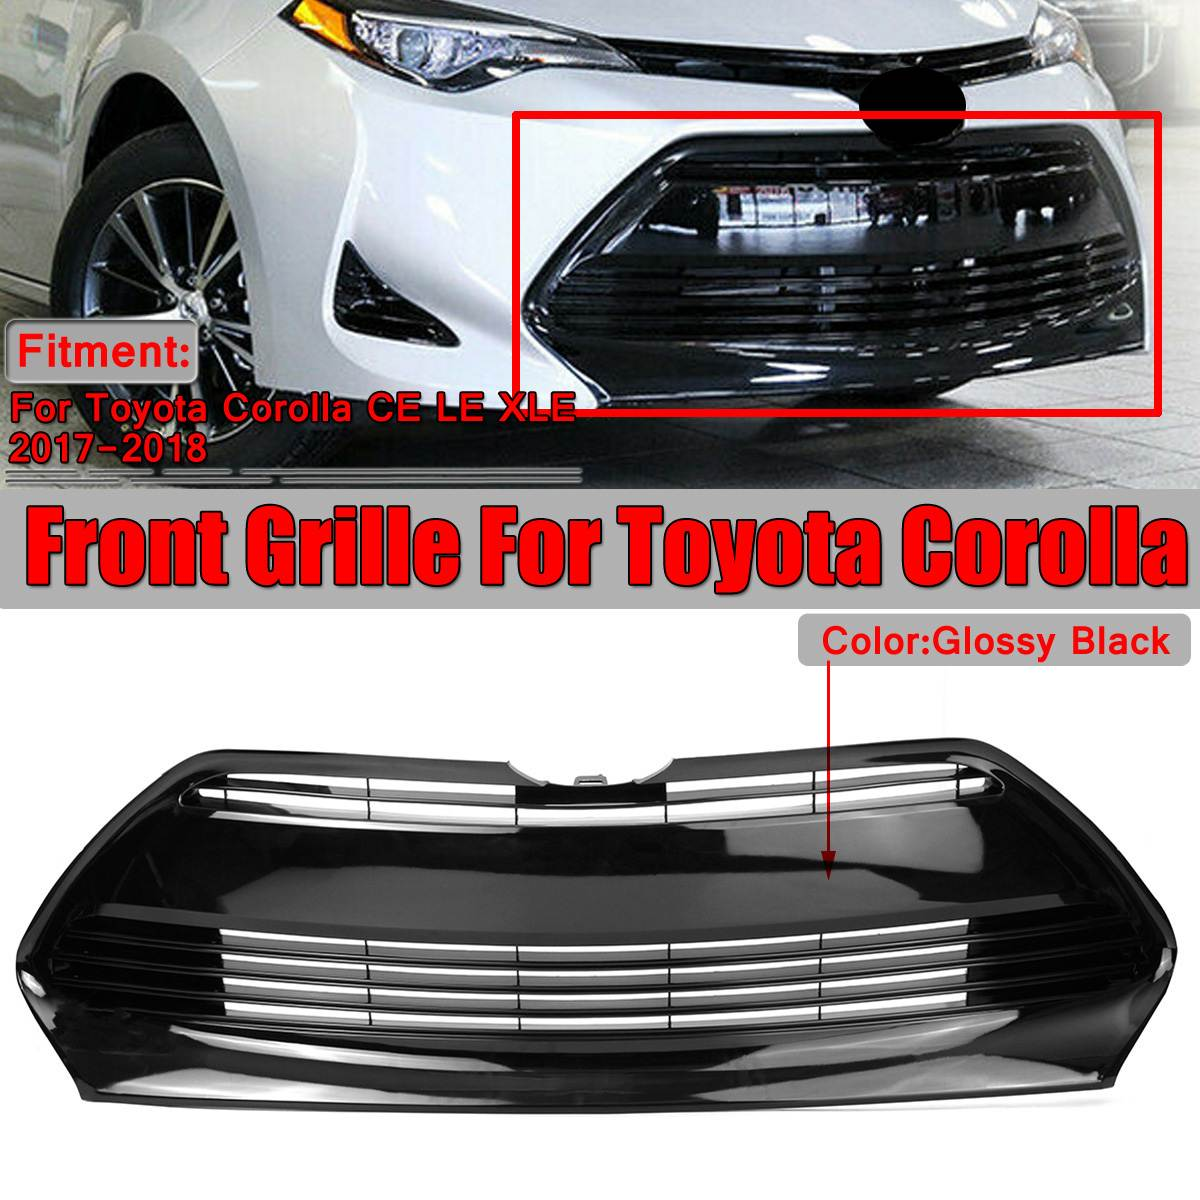 Glossy Black Car Front Bumper Grille Grill For Toyota For Corolla CE L E LE ECO XLE Style 2017-2019 Without EmblemGlossy Black Car Front Bumper Grille Grill For Toyota For Corolla CE L E LE ECO XLE Style 2017-2019 Without Emblem